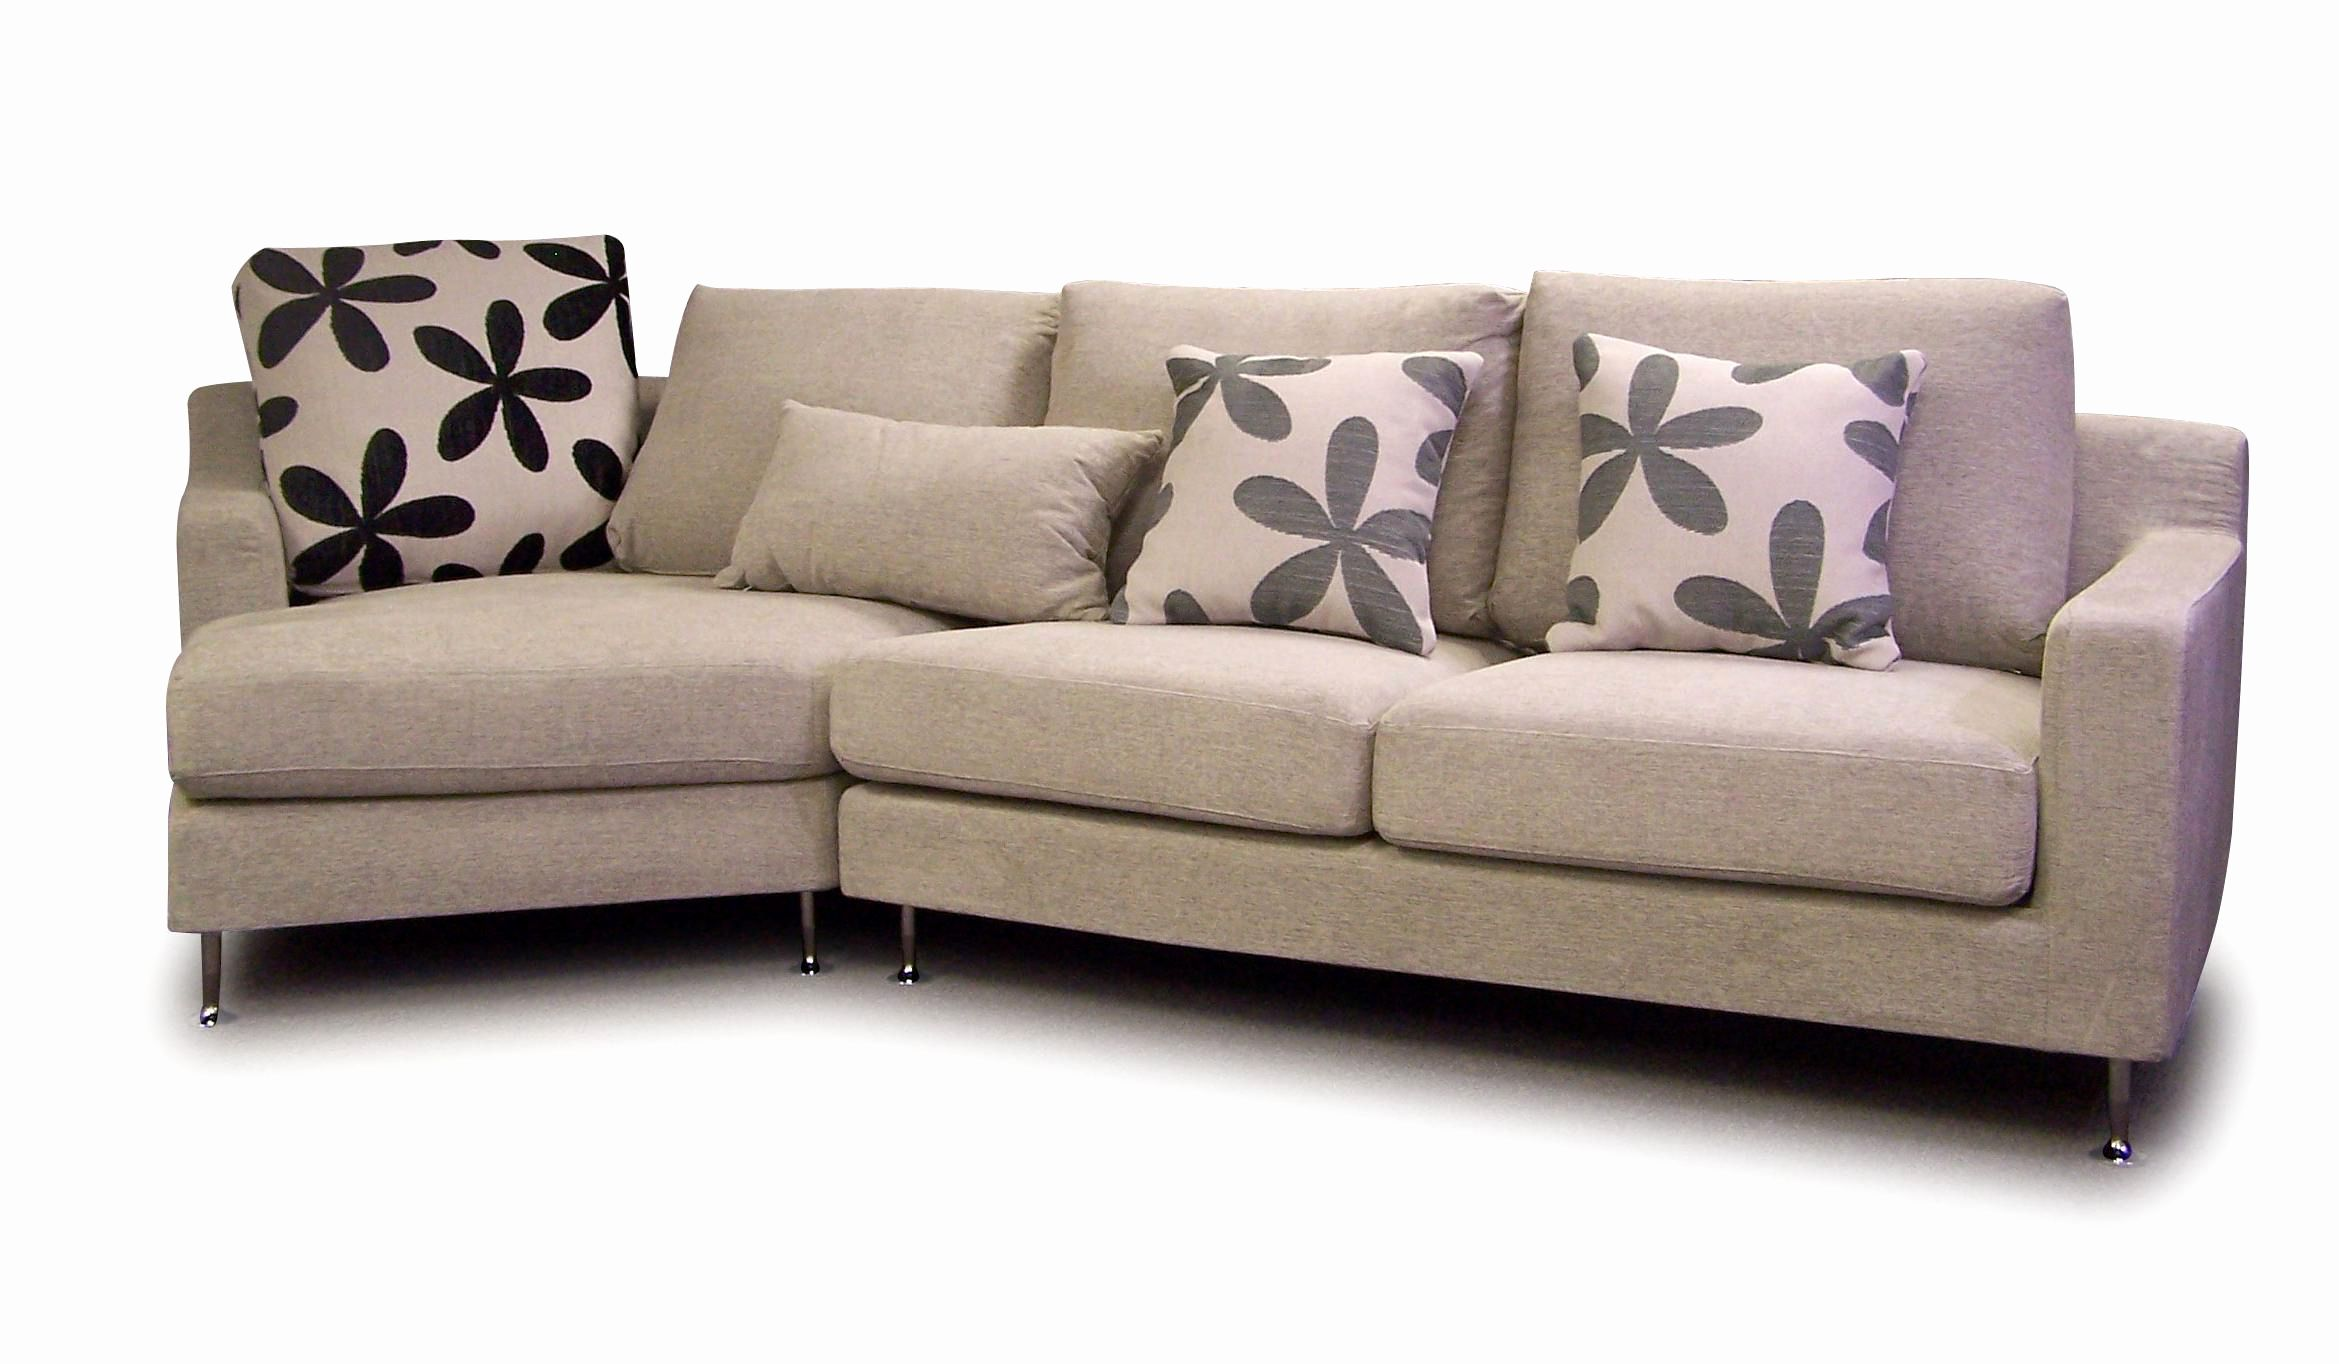 Ideas Armless Sleeper Sofa Image Beautiful Unique Small And Sectional Sofas